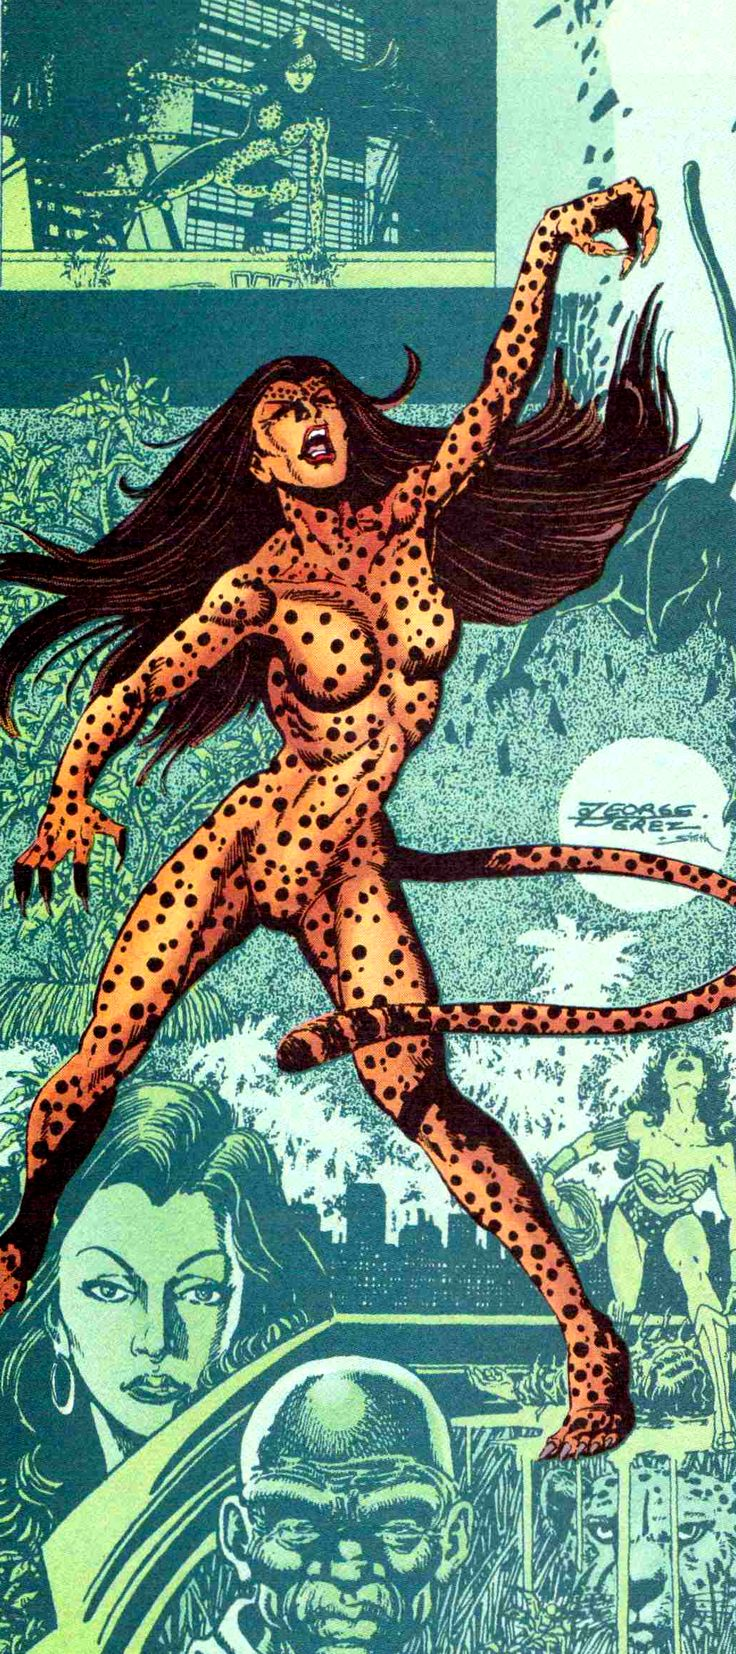 The Cheetah by George Perez...the best version of her in my opinion.